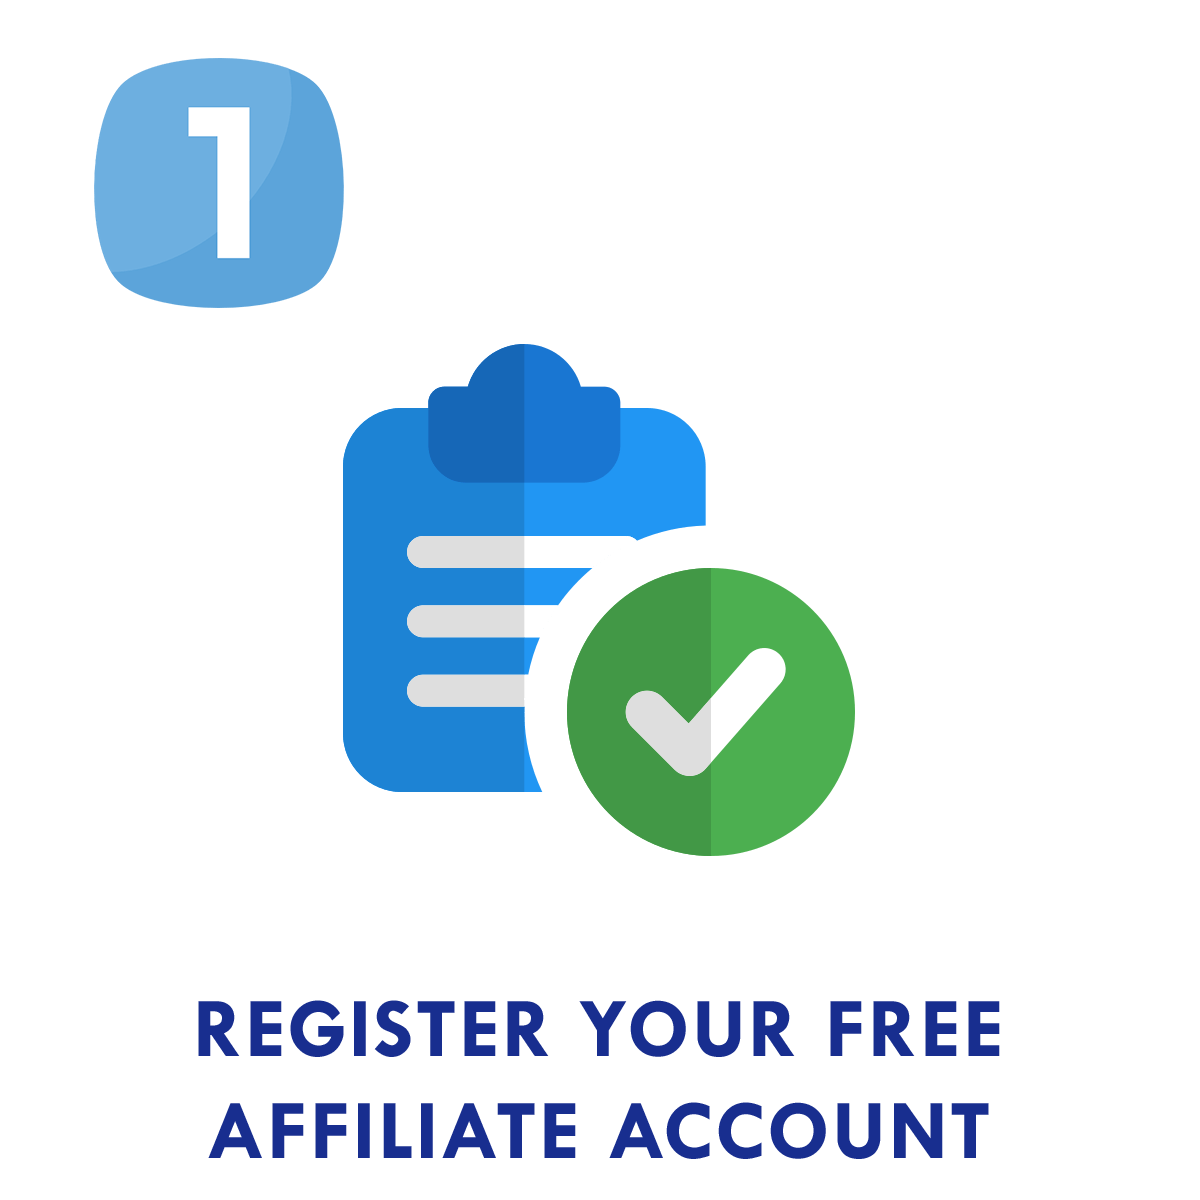 Step 1: Register your free Sirena affiliate account